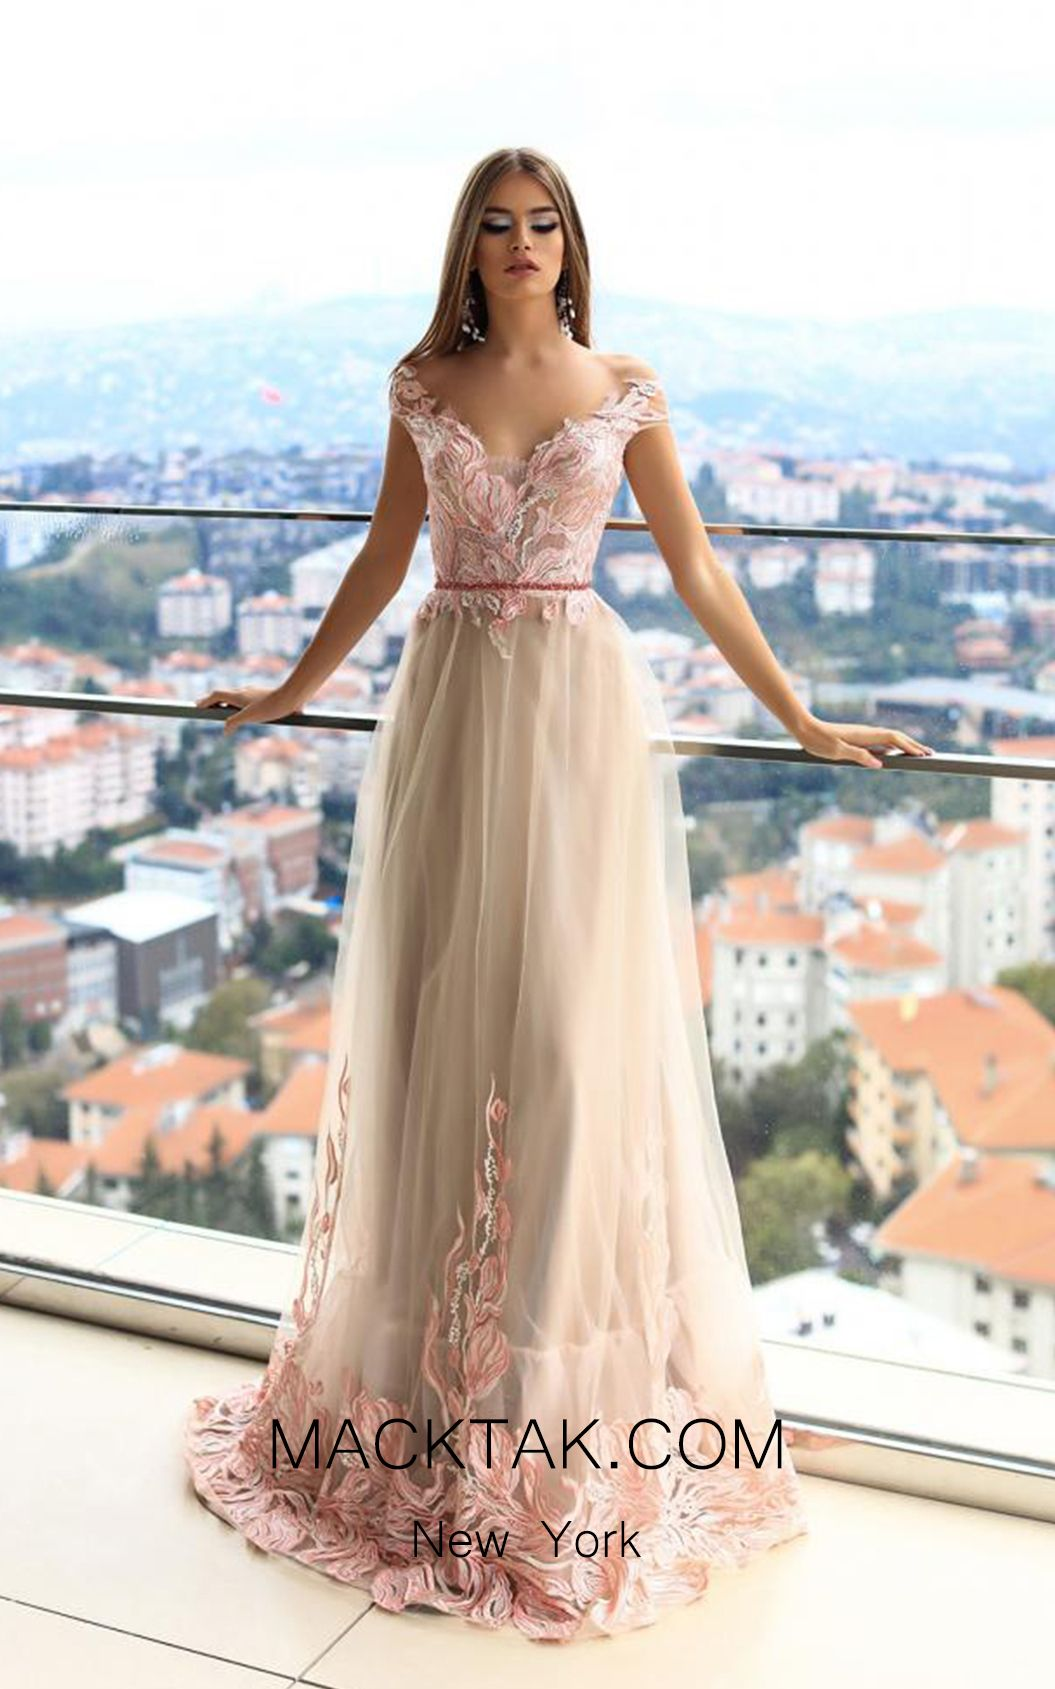 Energetic Stunning Sequined A-line Evening Dress With Long Sleeves 2019 Sweep Train Red Carpet Prom Gowns Party For Women Robe De Soiree Fragrant Aroma Weddings & Events